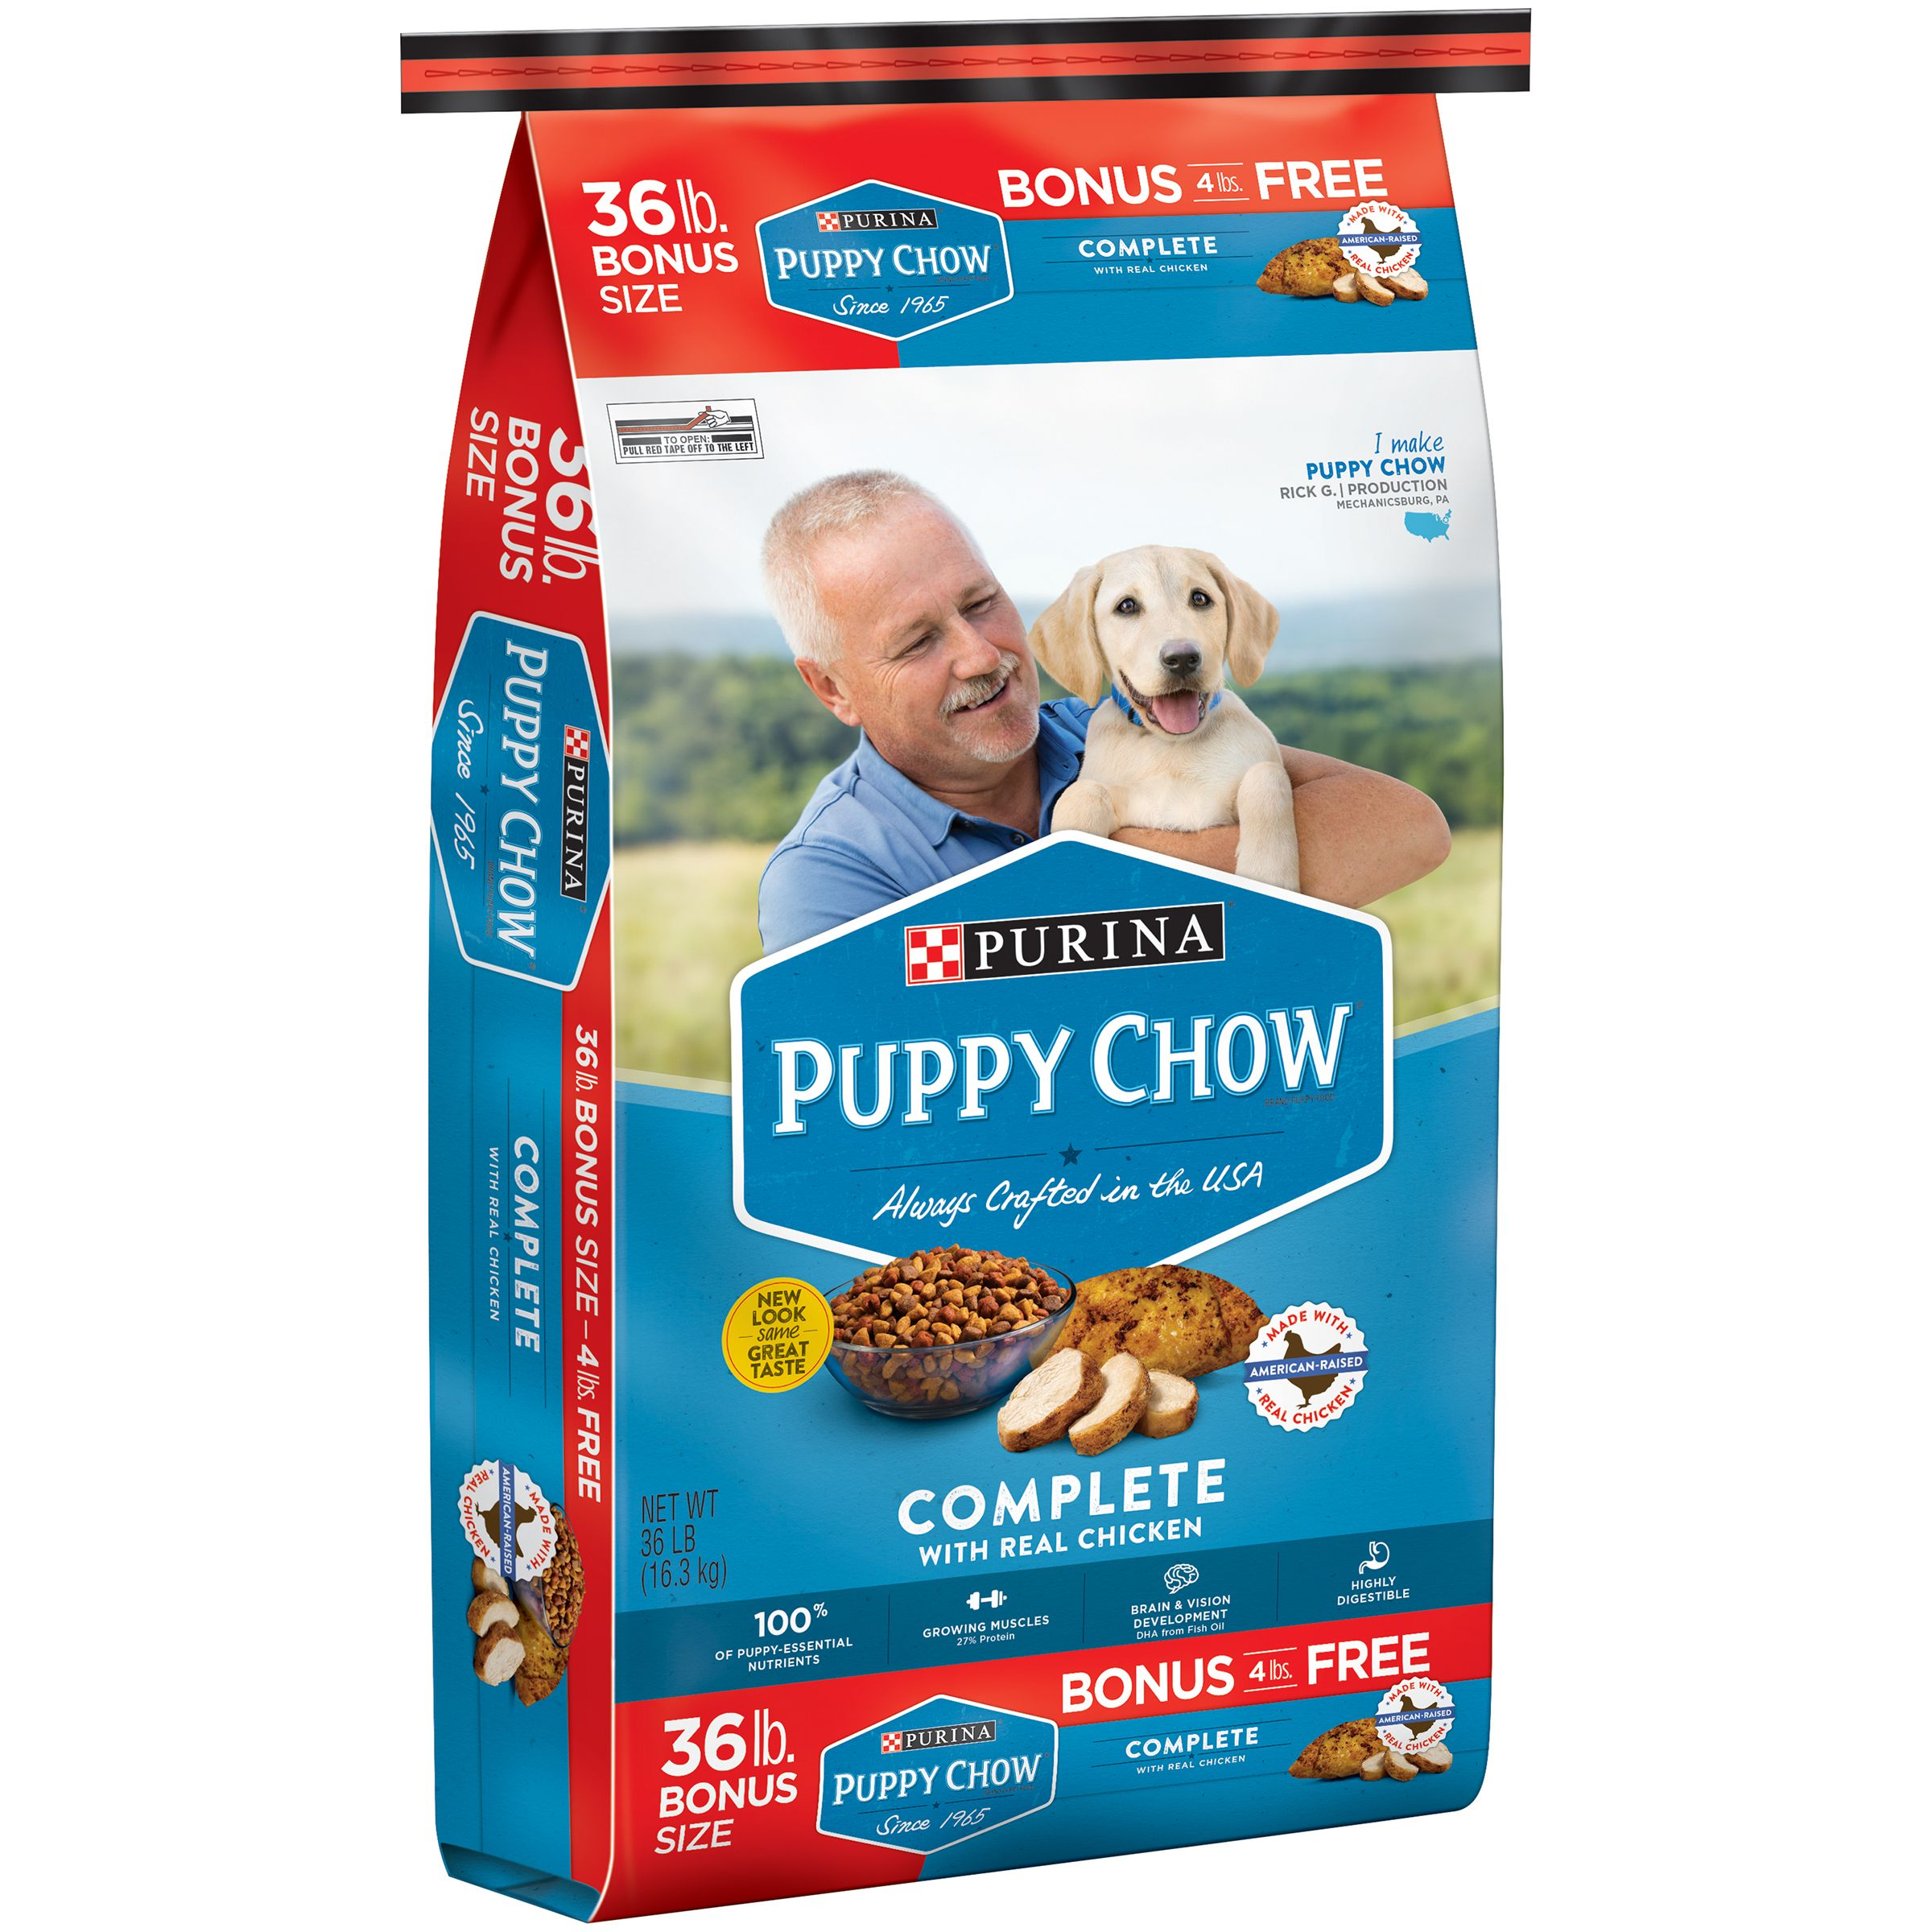 Pets Purina puppy chow